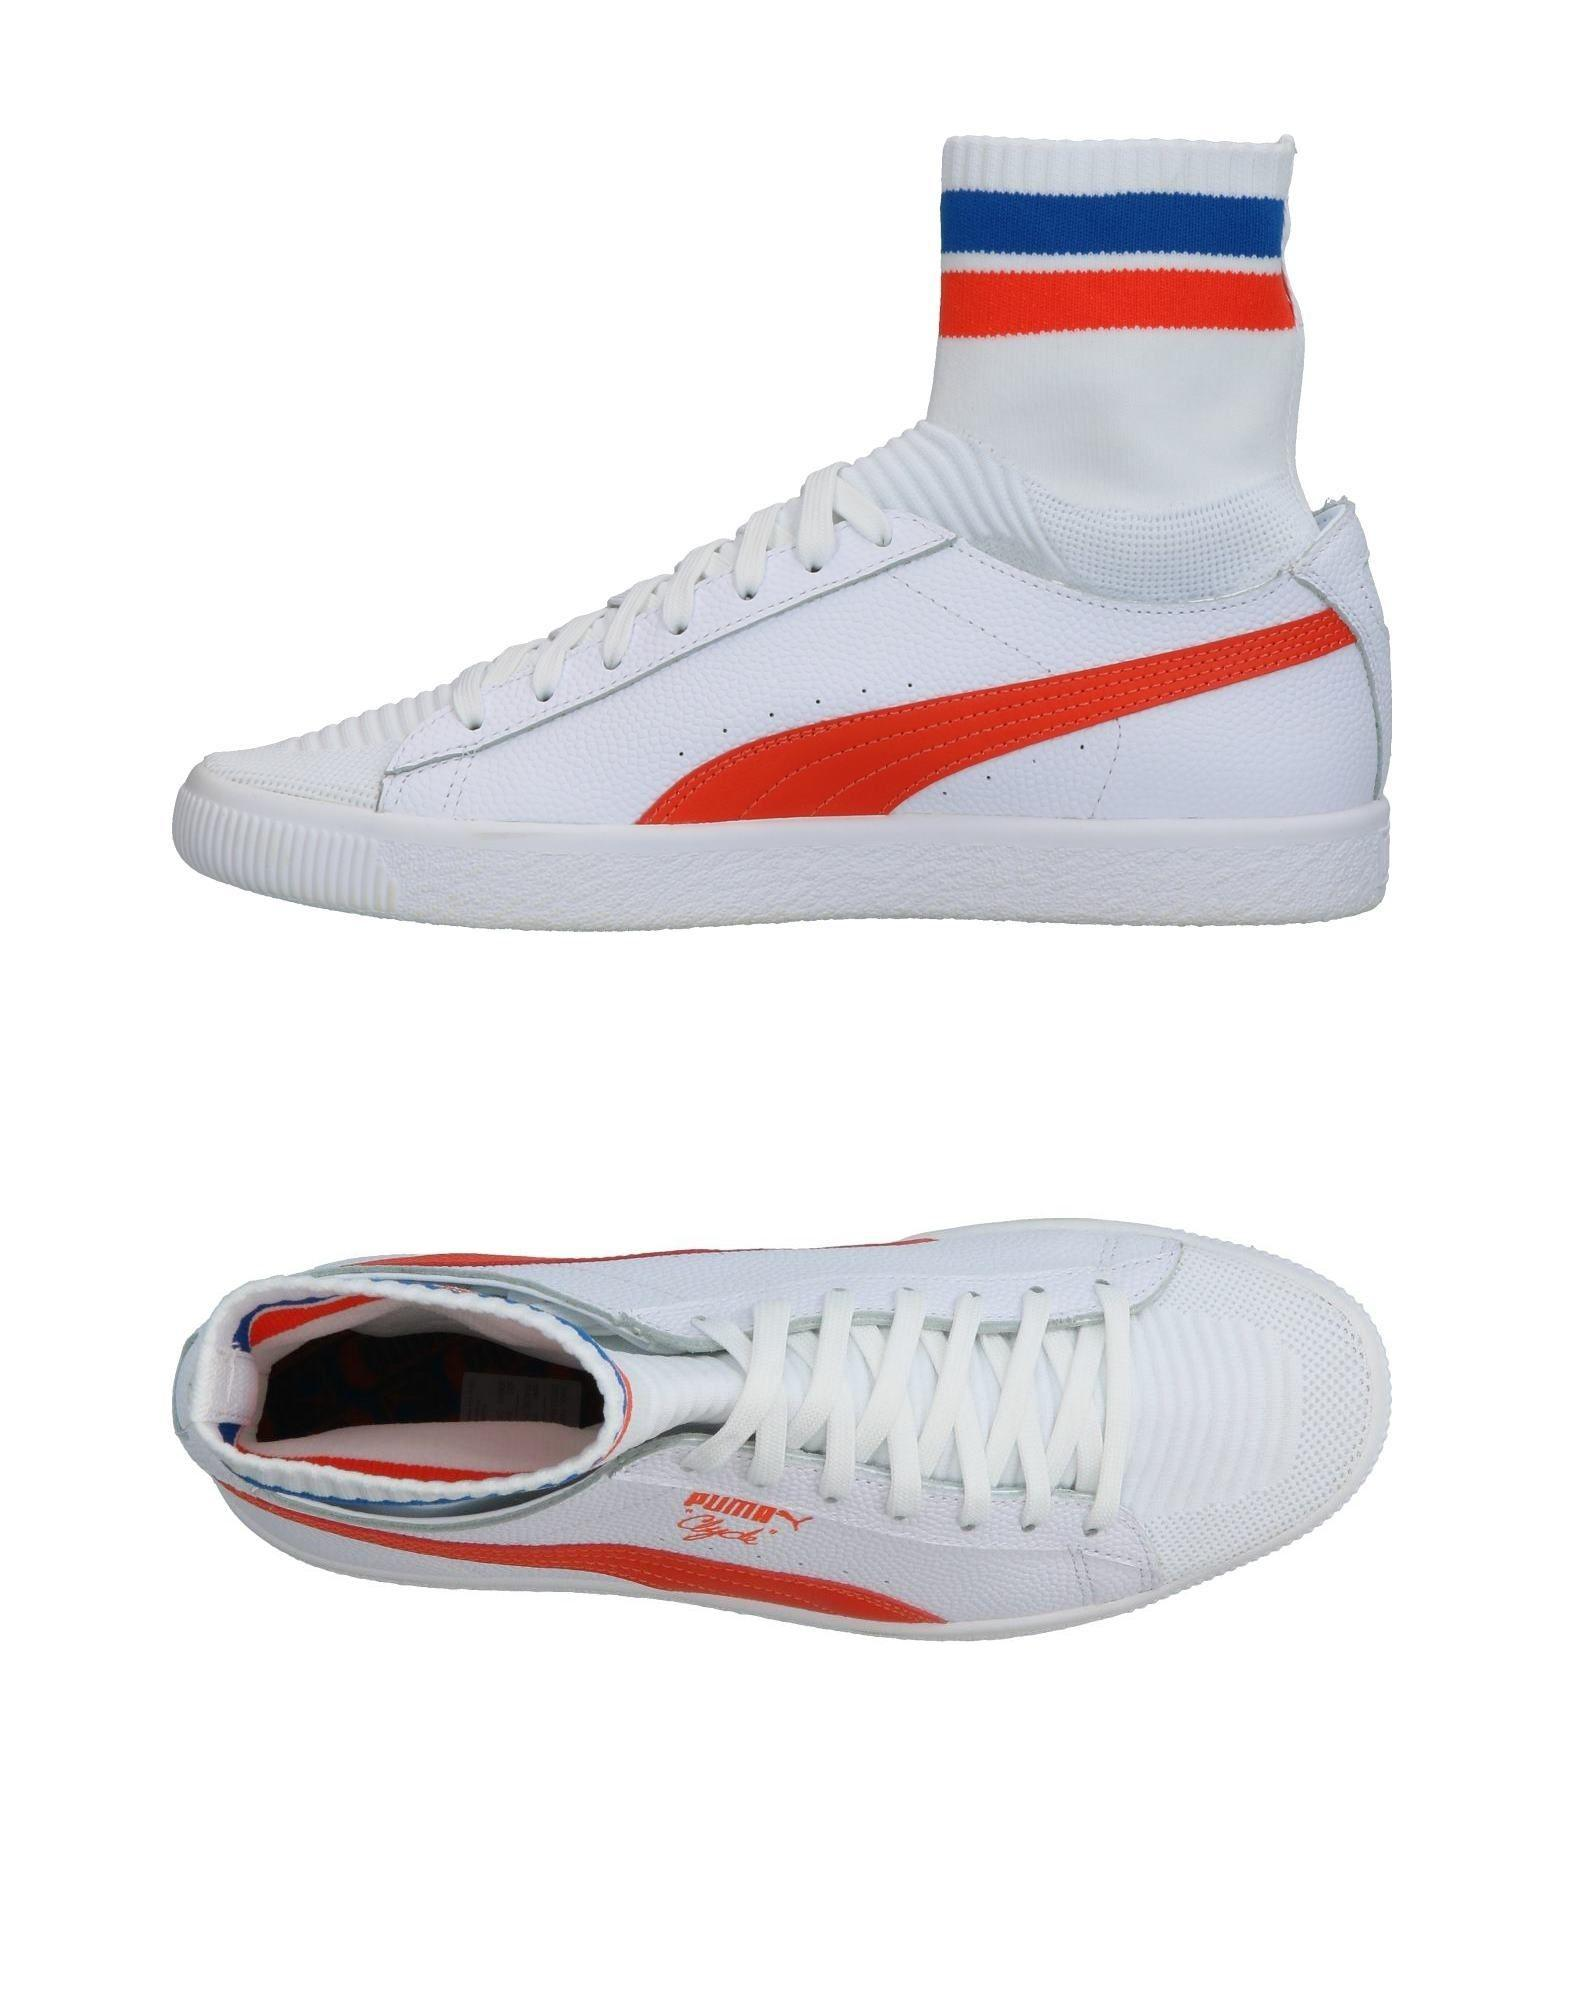 lyst puma hightops amp sneakers in white for men